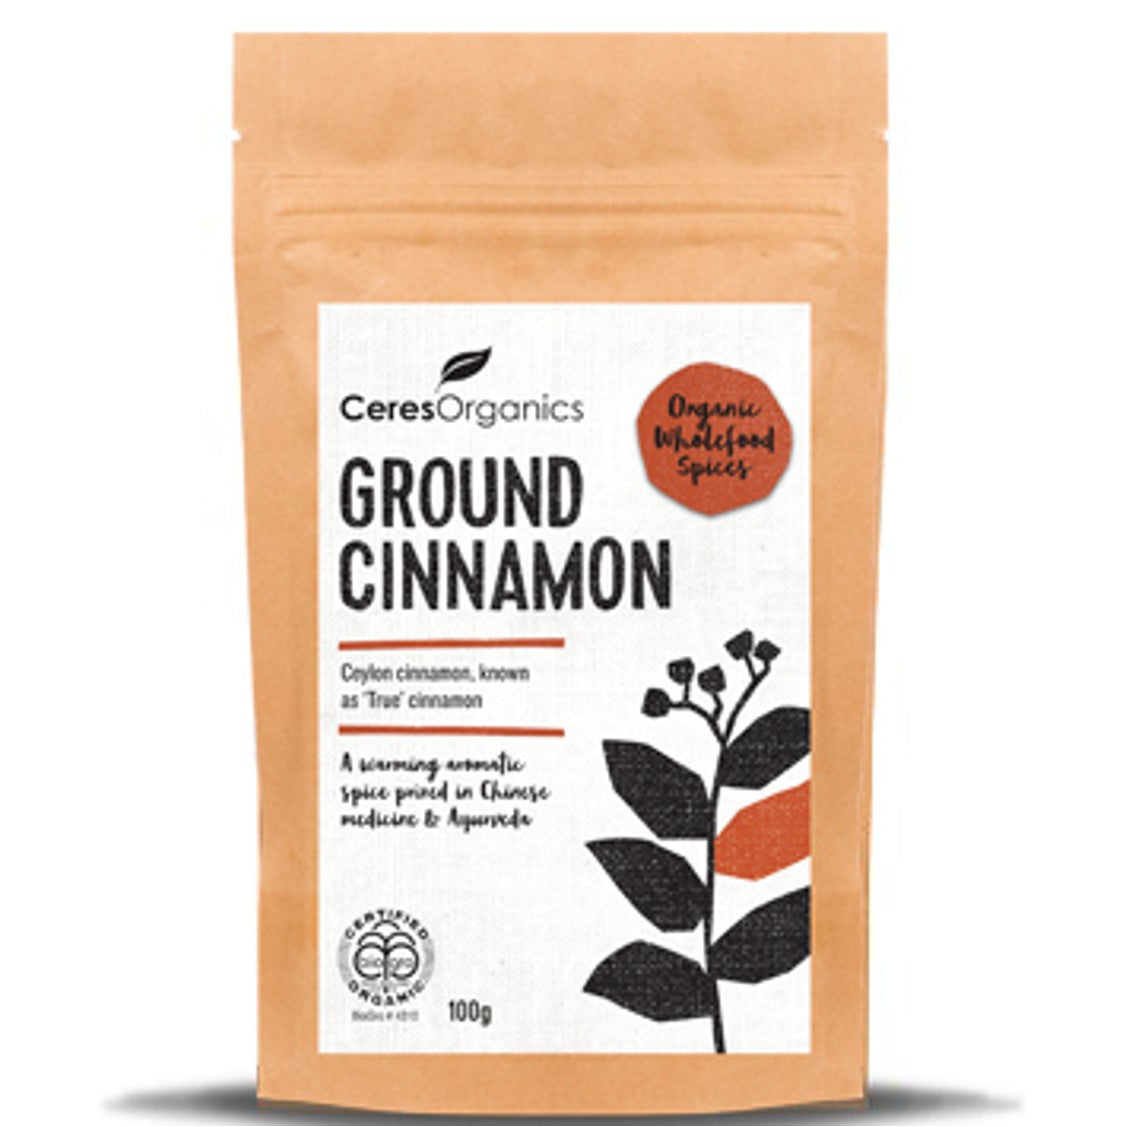 Ceres Organics Ground Cinnamon, 100g